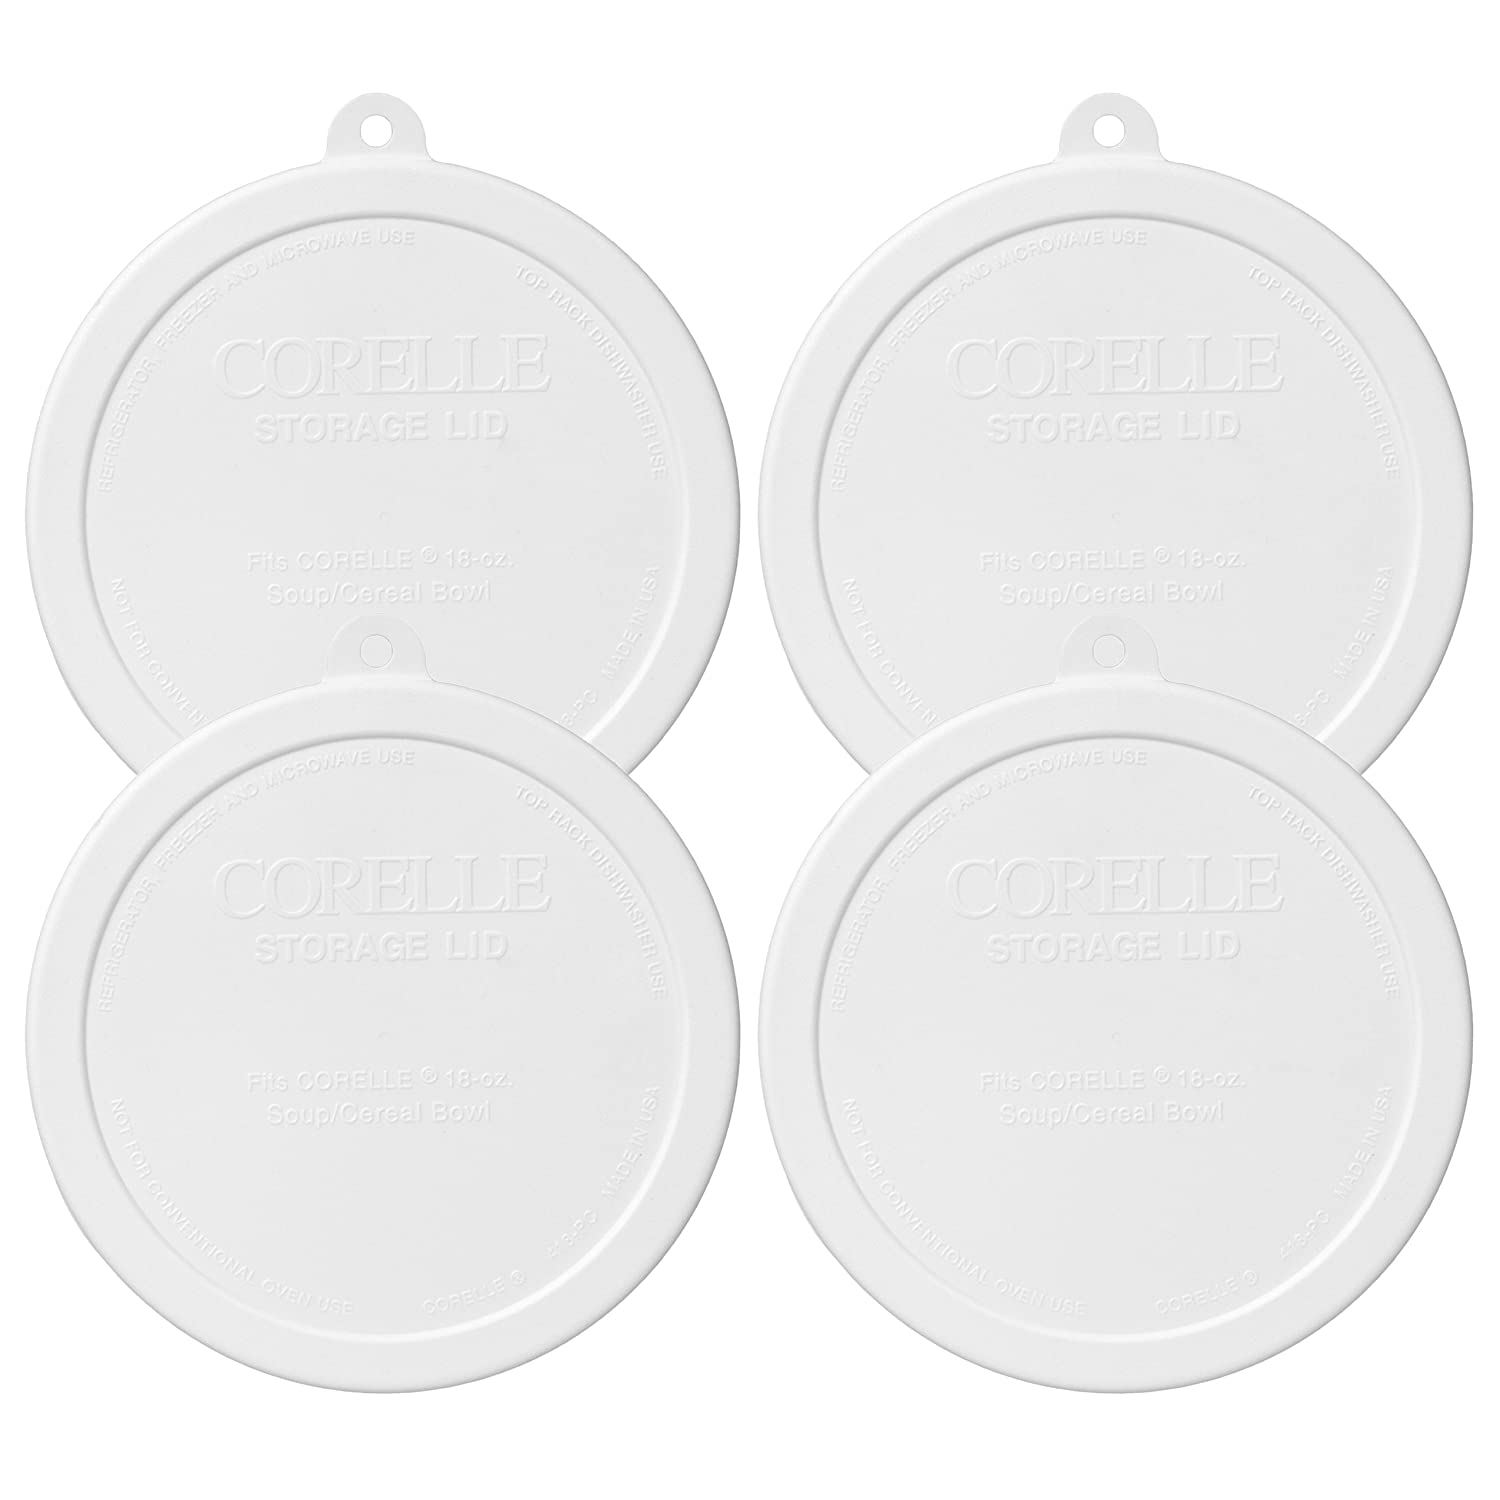 Corelle 418-PC Livingware White 18 Ounce Soup / Cereal Bowl Plastic Lid - 4 Pack